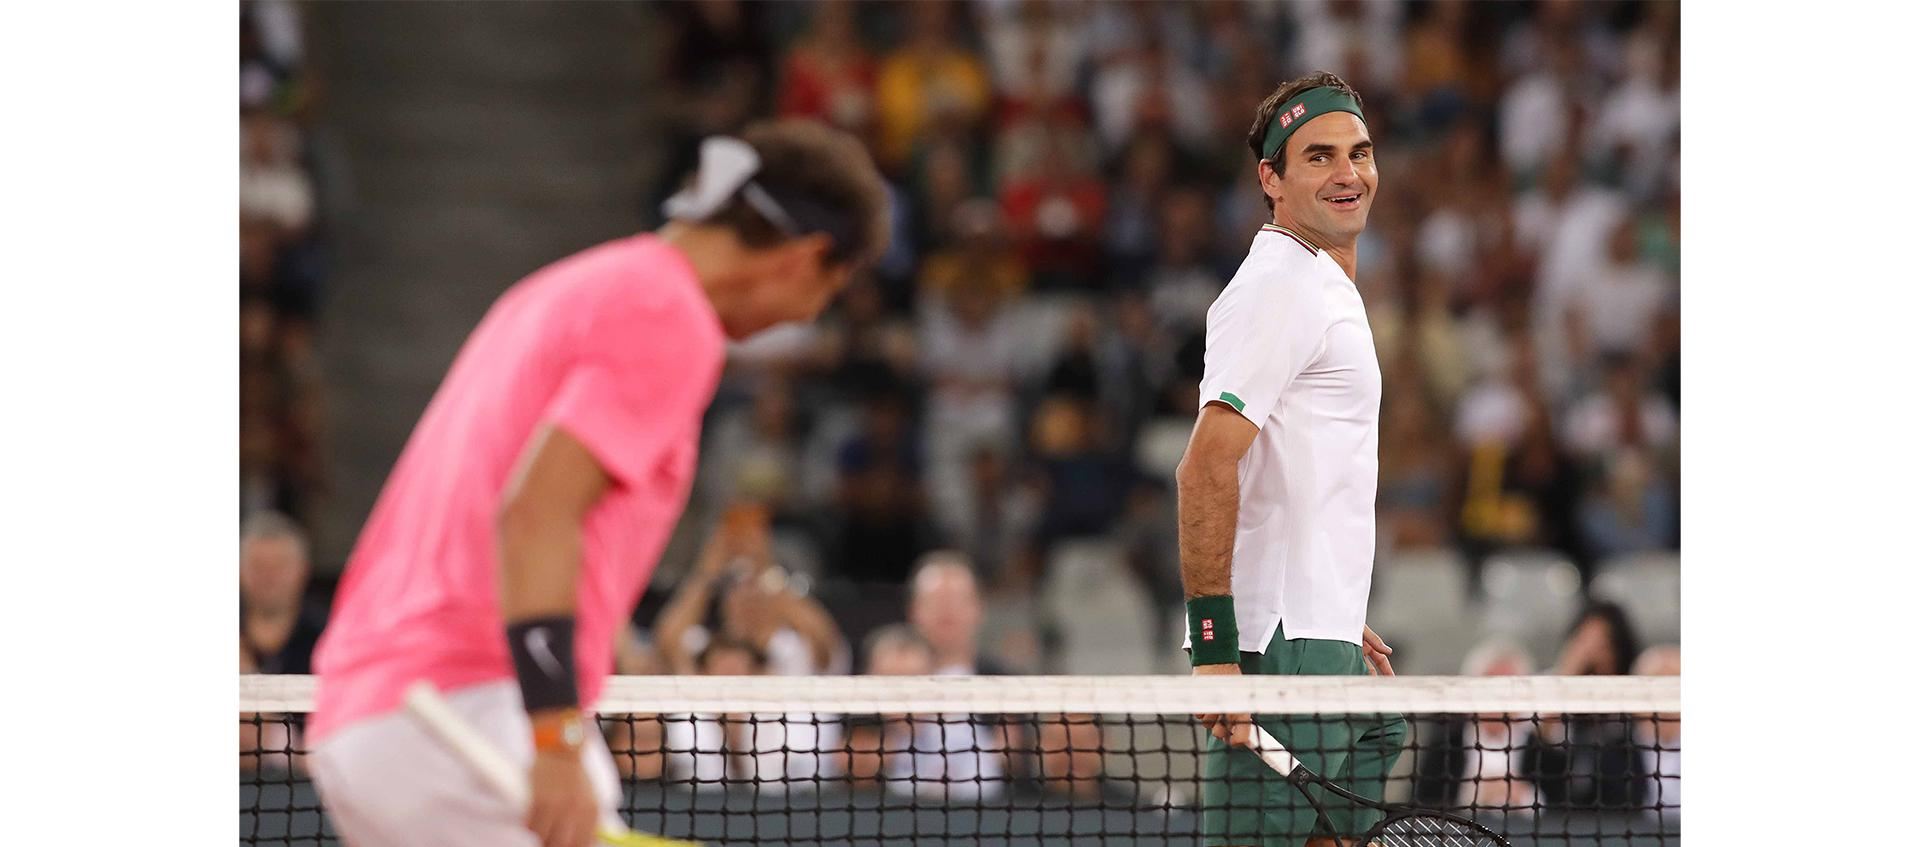 Roger Federer and Rafael Nadal in charity exhibition in Cape Town